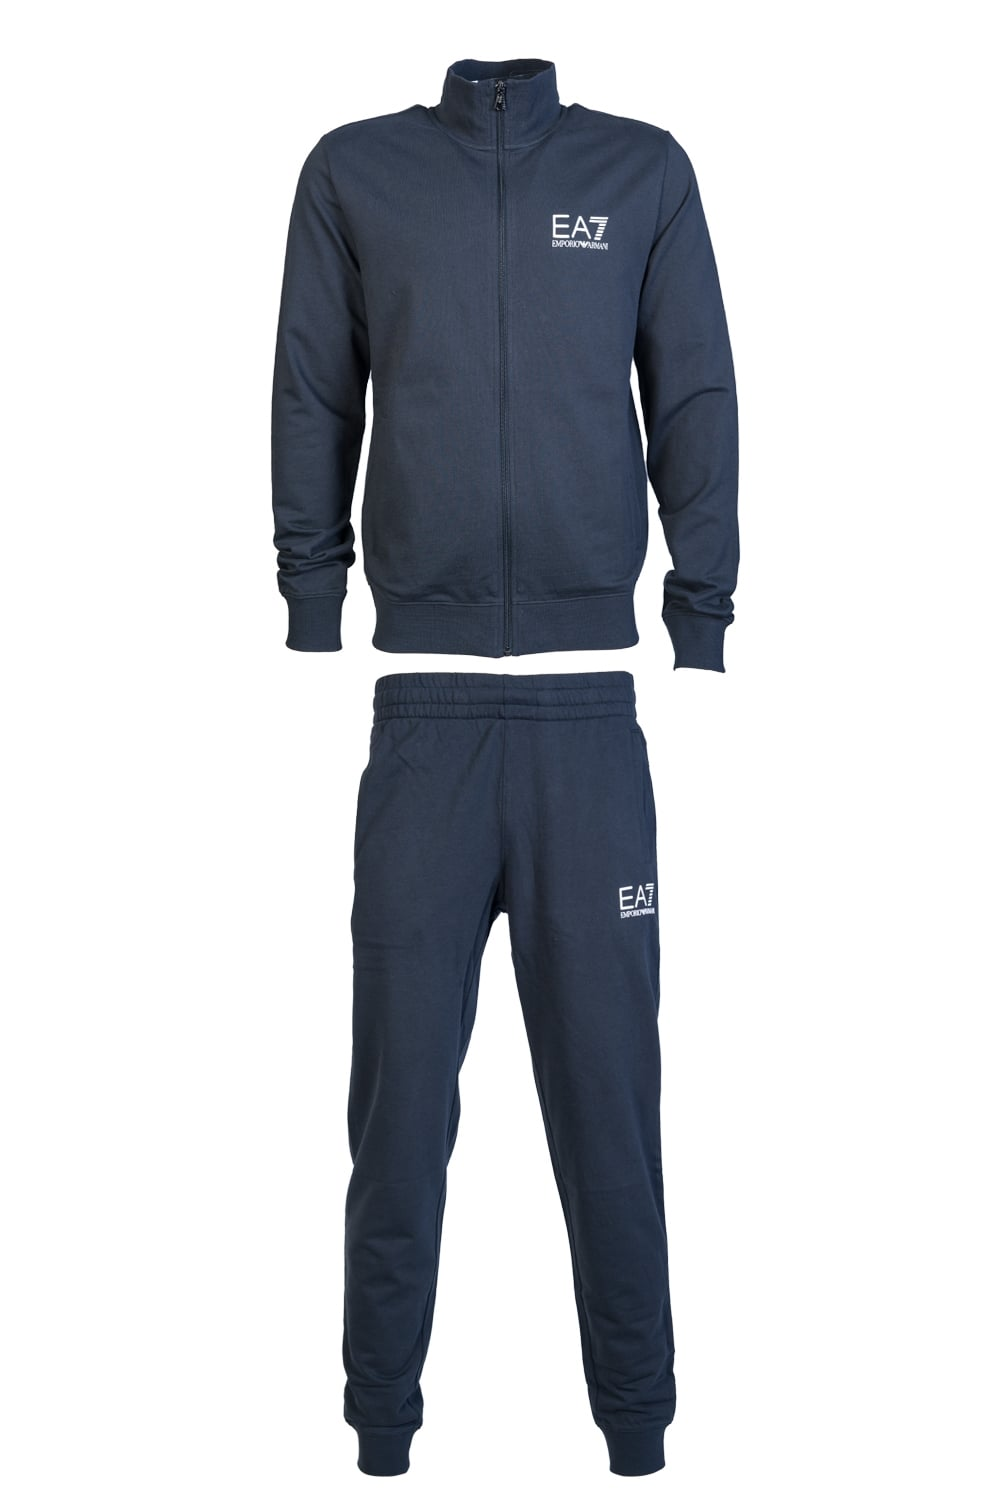 7df4570040d EA7 Emporio Armani Tracksuit 6YPV51 PJ05Z - Clothing from Sage Clothing UK